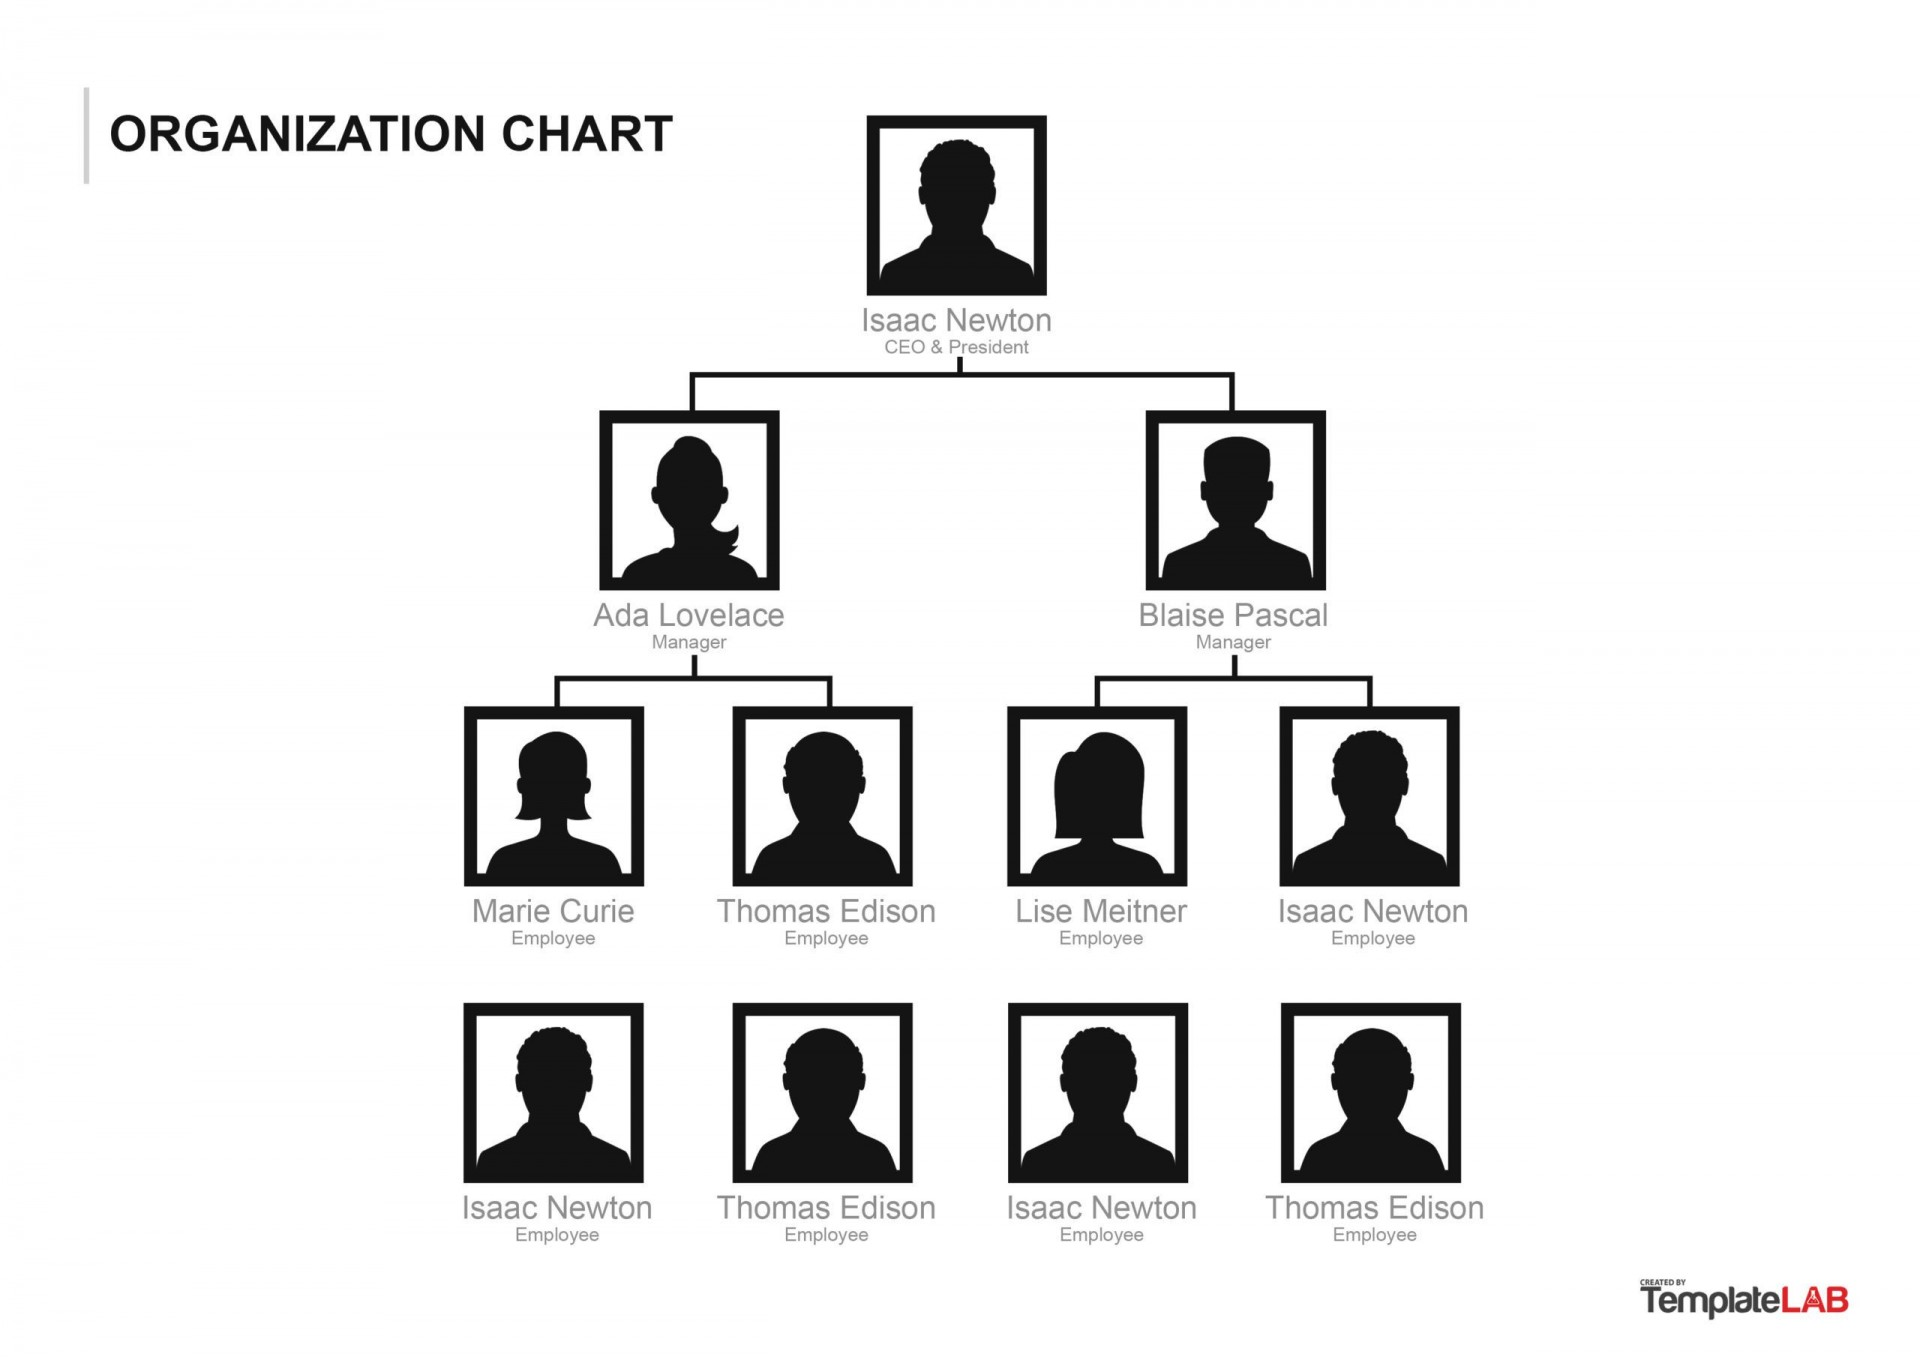 008 Formidable Organization Chart Template Excel Download High Def  Org Organizational Format In1920